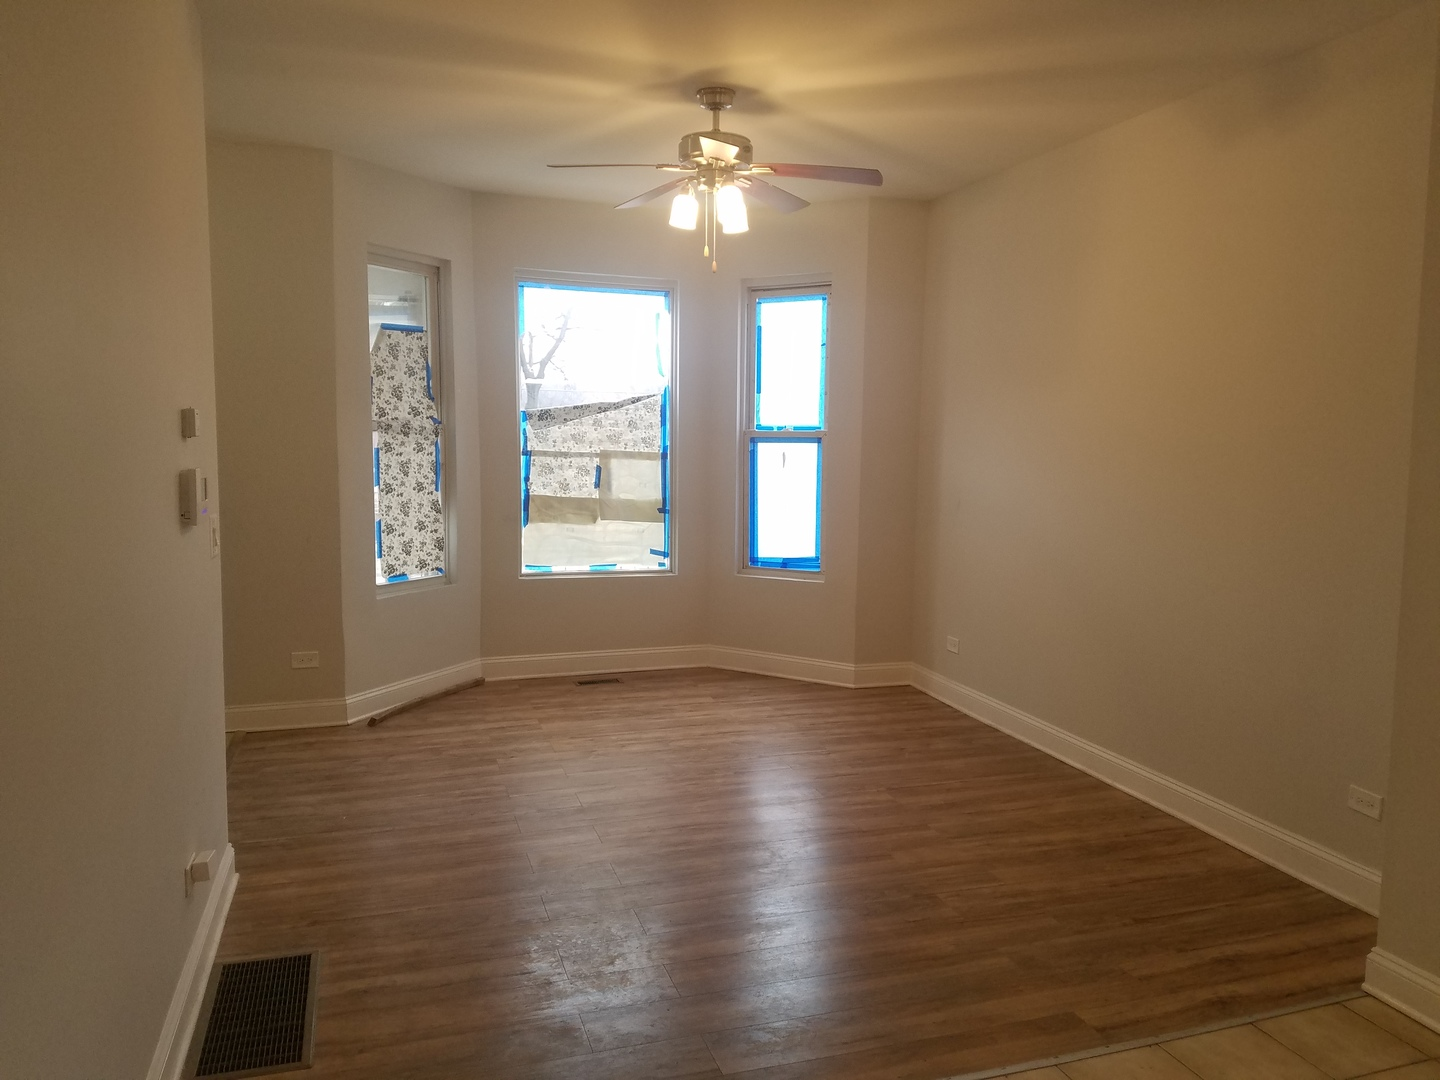 5601 South May, Chicago, Illinois, 60621